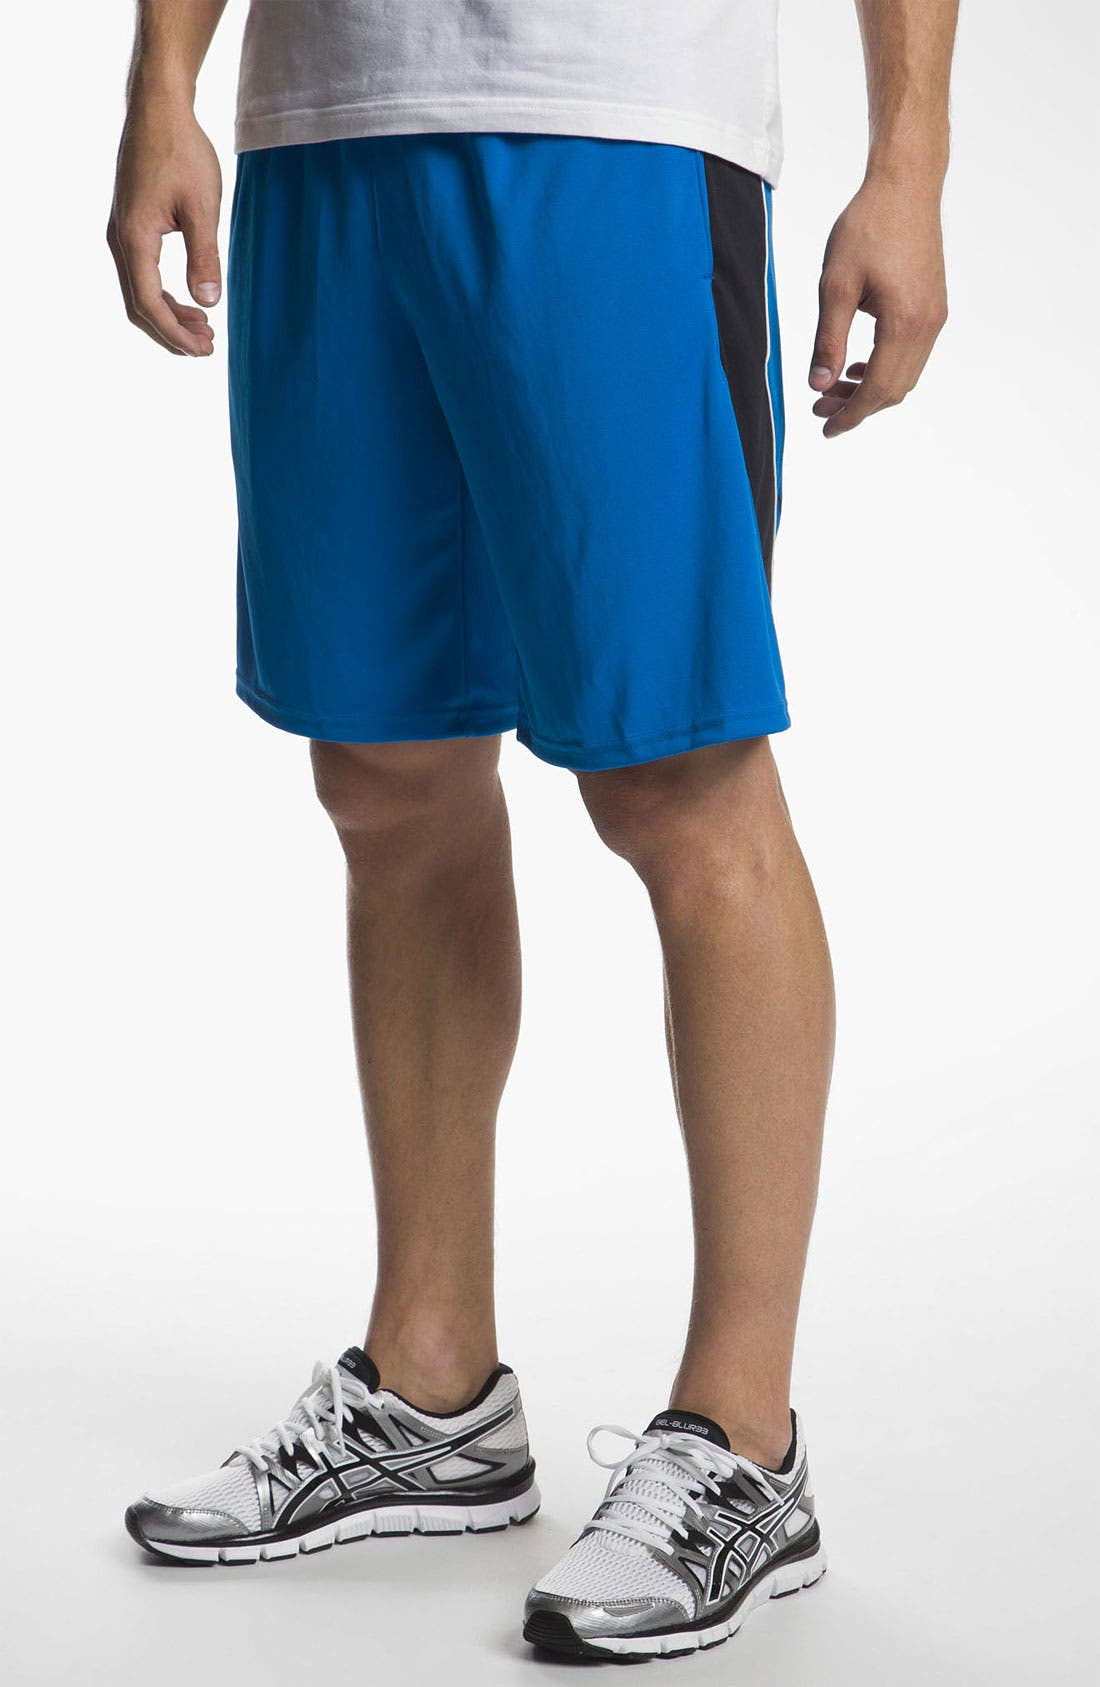 Alternate Image 1 Selected - Under Armour 'Multiplier' Knit Shorts